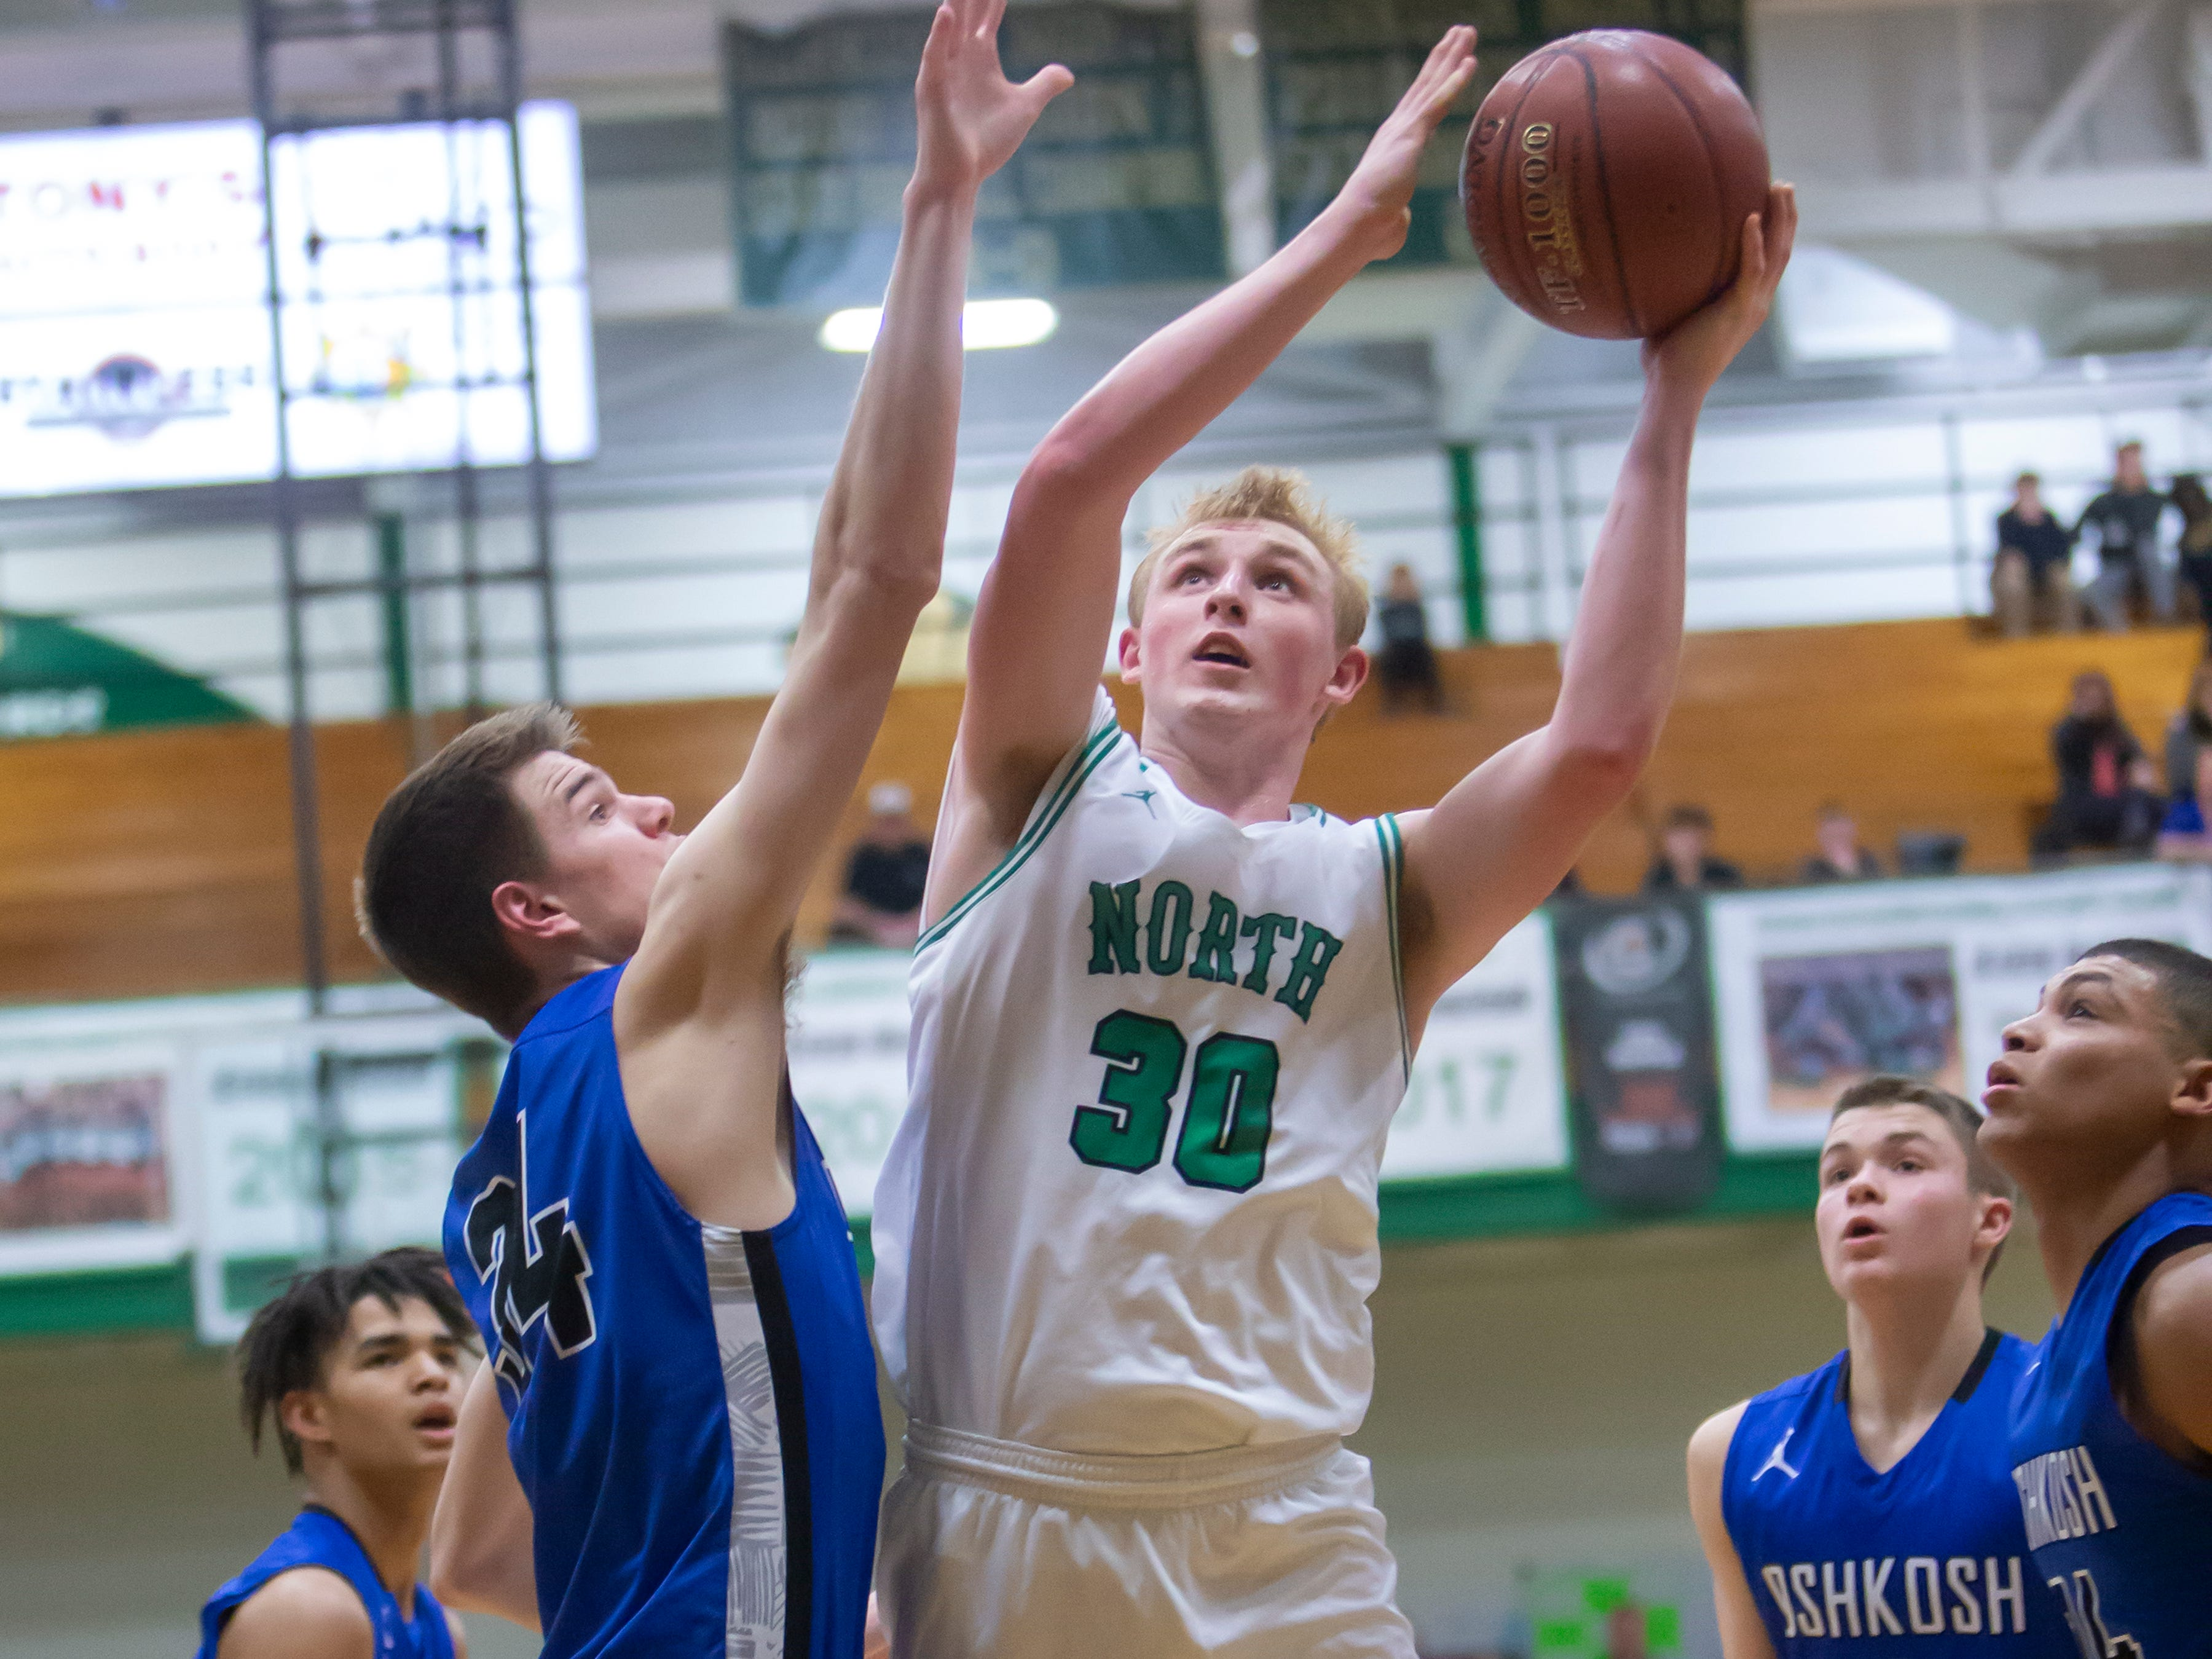 Oshkosh North's Matthew Berger goes up for a shot with Oshkosh West's Luke Haasl attempting to block the shot at the Oshkosh North High School on Tuesday, Jan. 8, 2019.